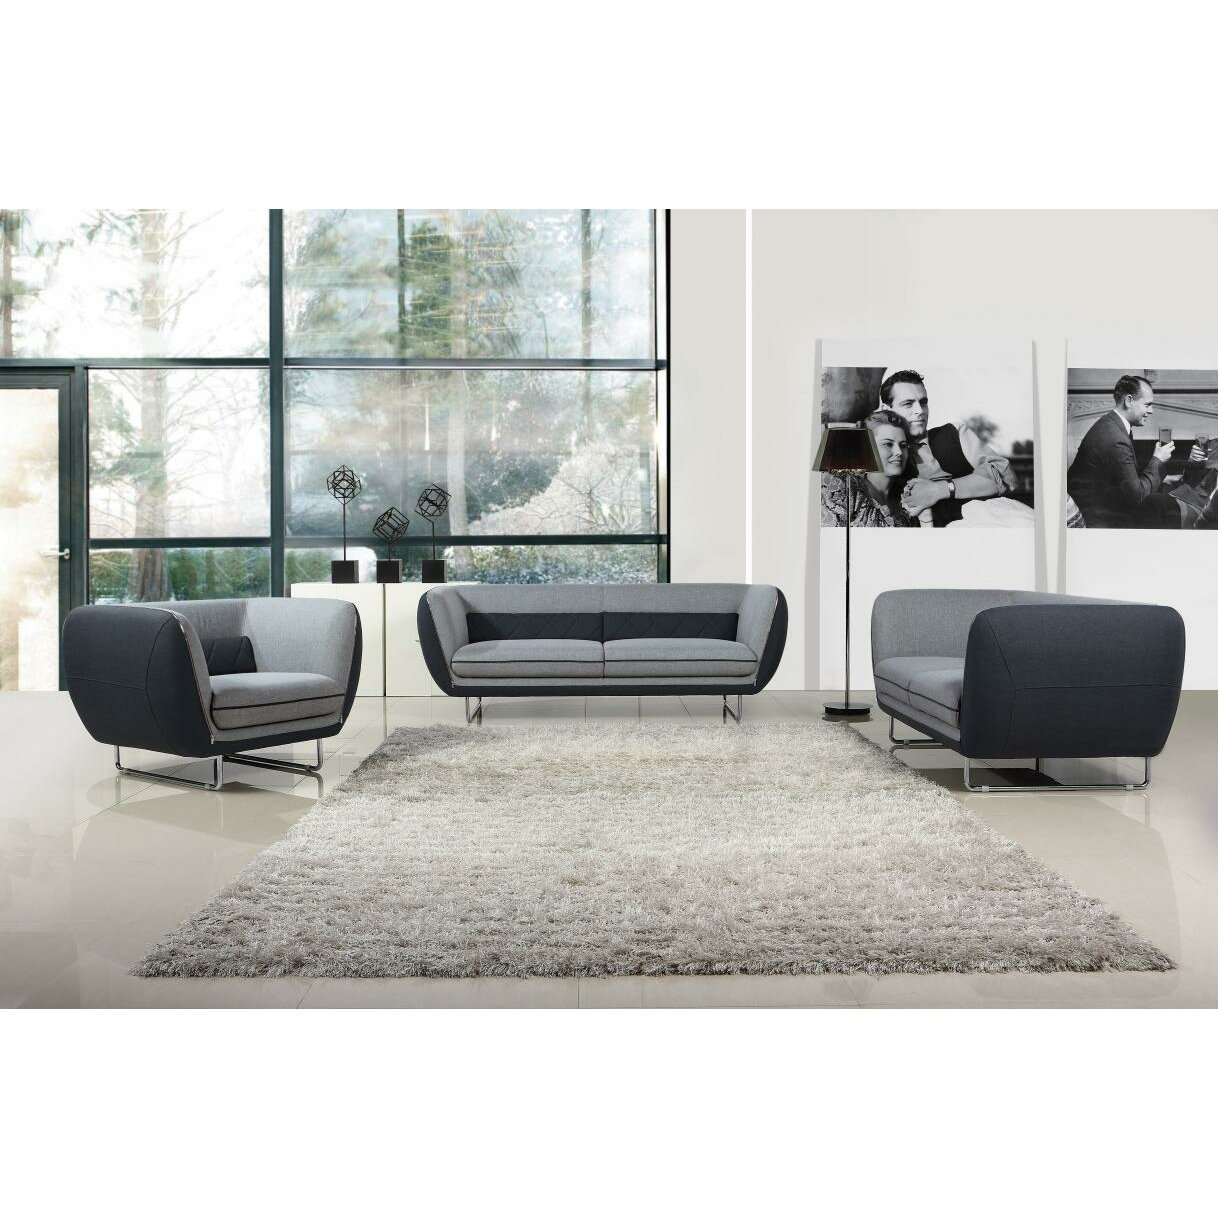 Vig furniture divani casa vietta modern living room set reviews wayfair - Modern living room furniture set ...